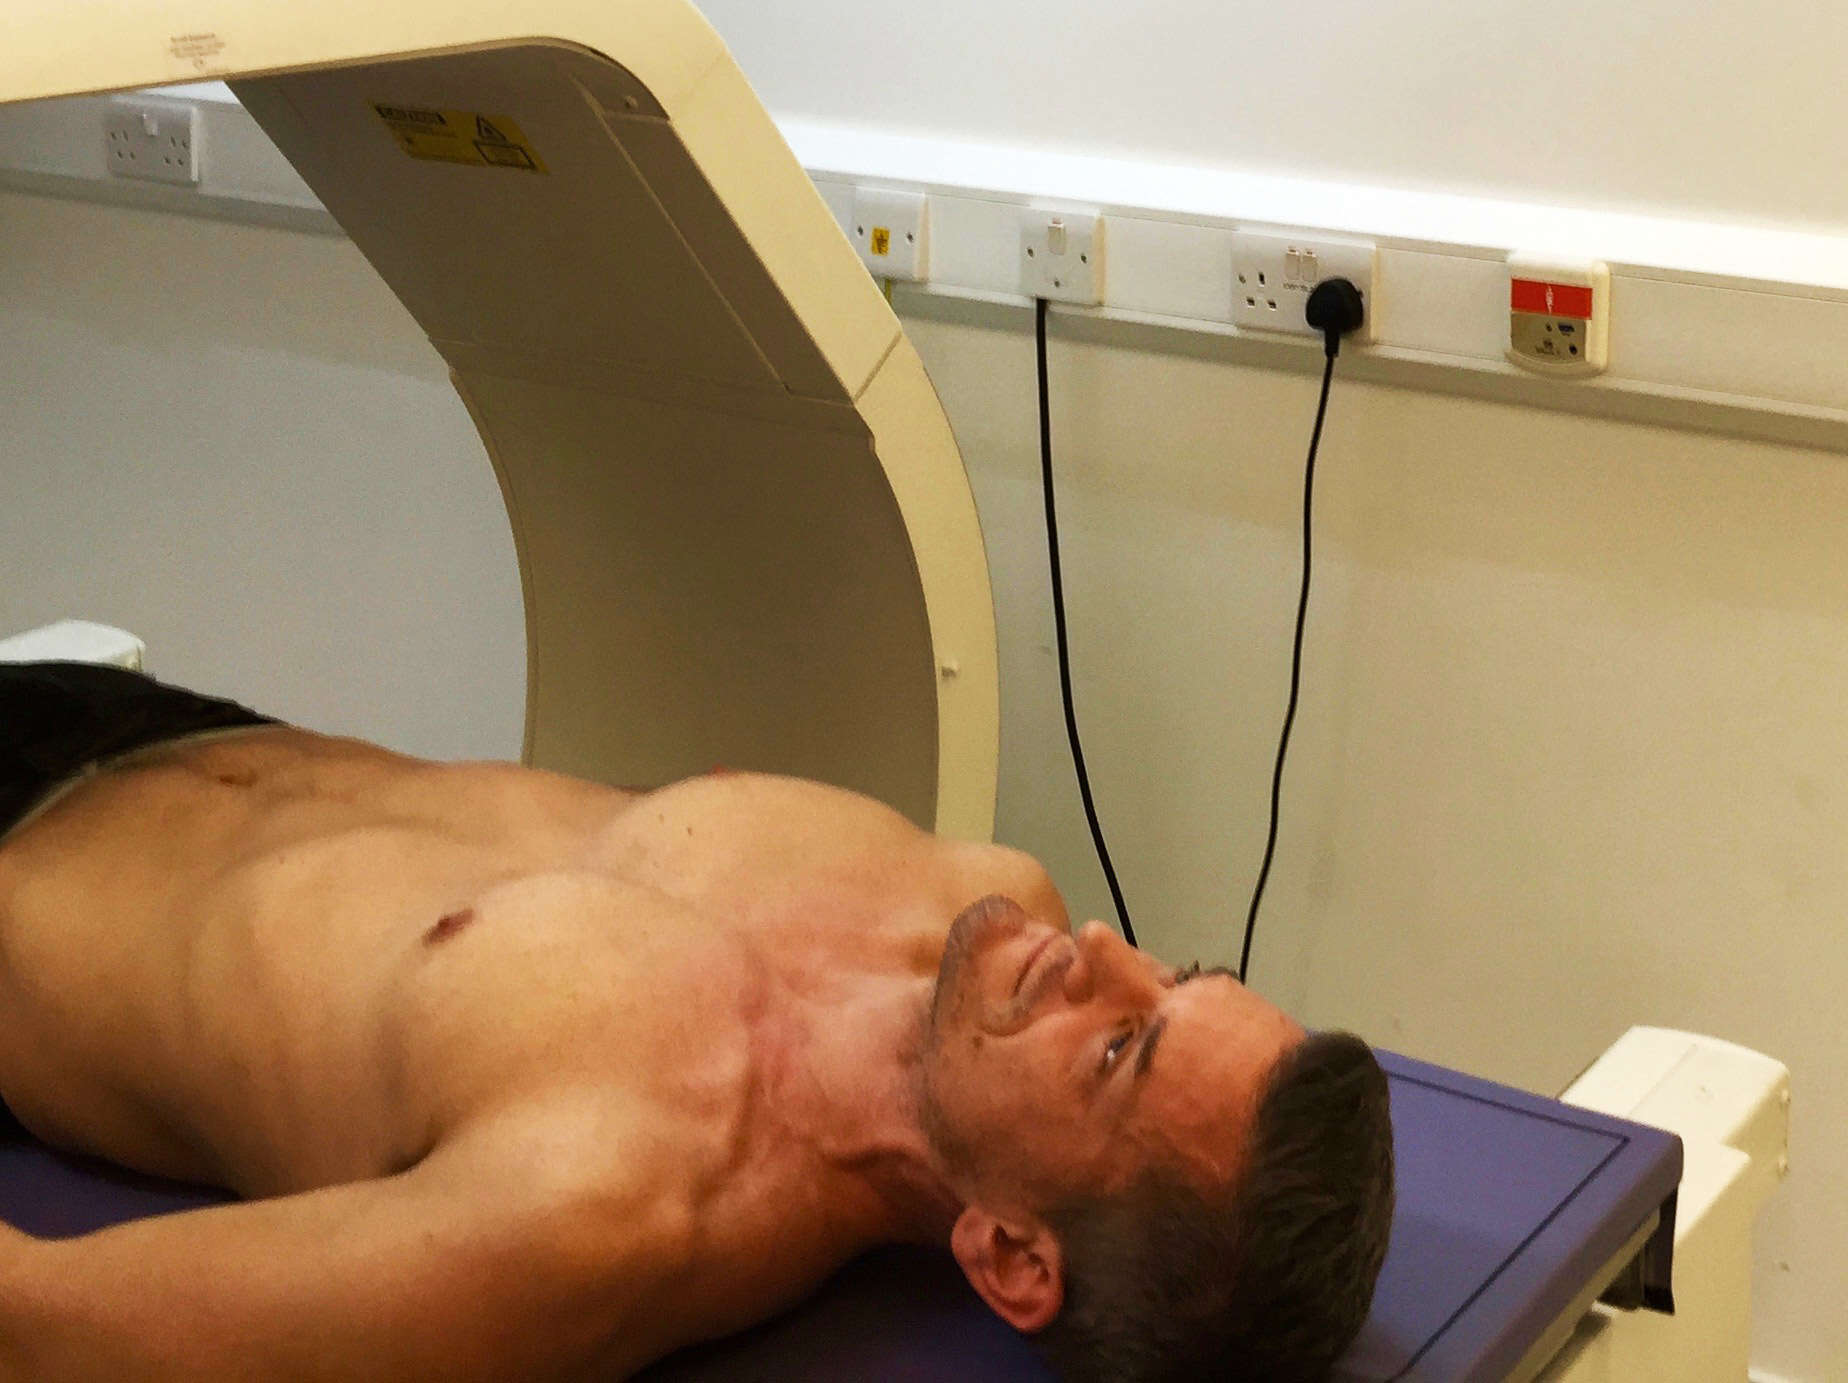 Getting a DEXA scan from Bodyscan is easy. You just lie there..